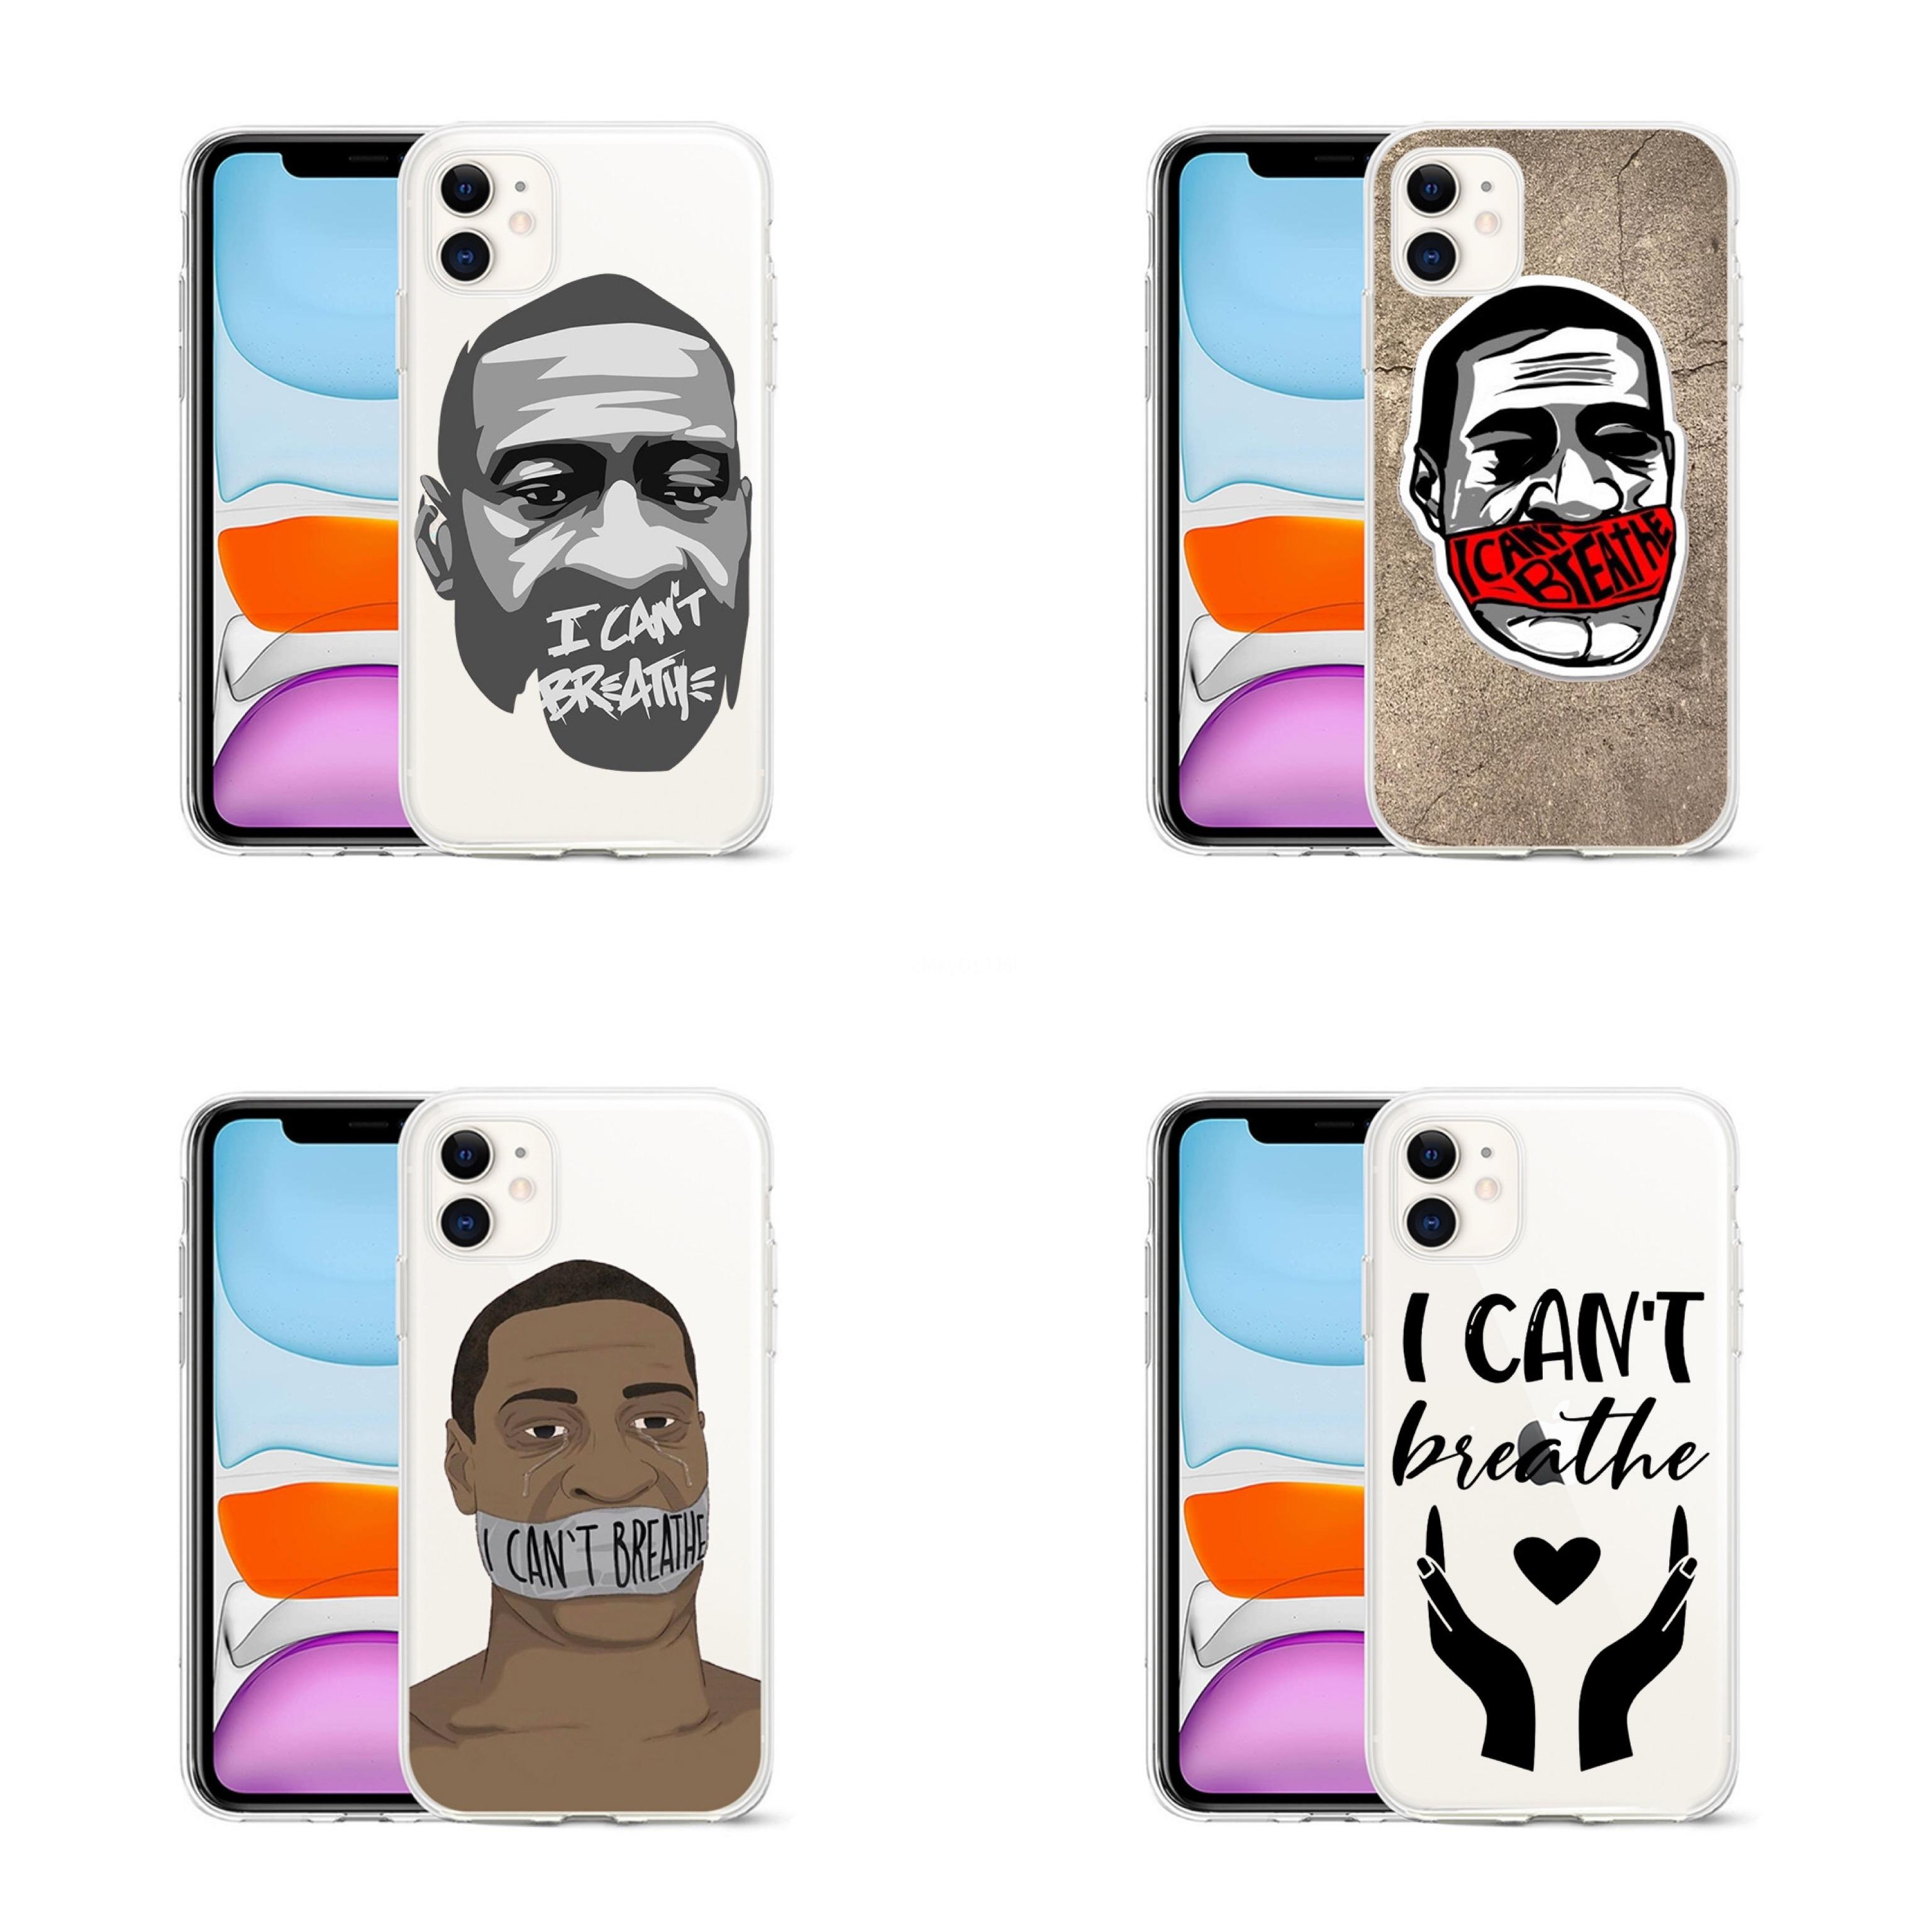 Designer Phone Cases Iphone Xs Max Protector For Iphonex Iphone X 8 7 Plus Xr Womens Ladies Newest Cell Phone Case #OU202